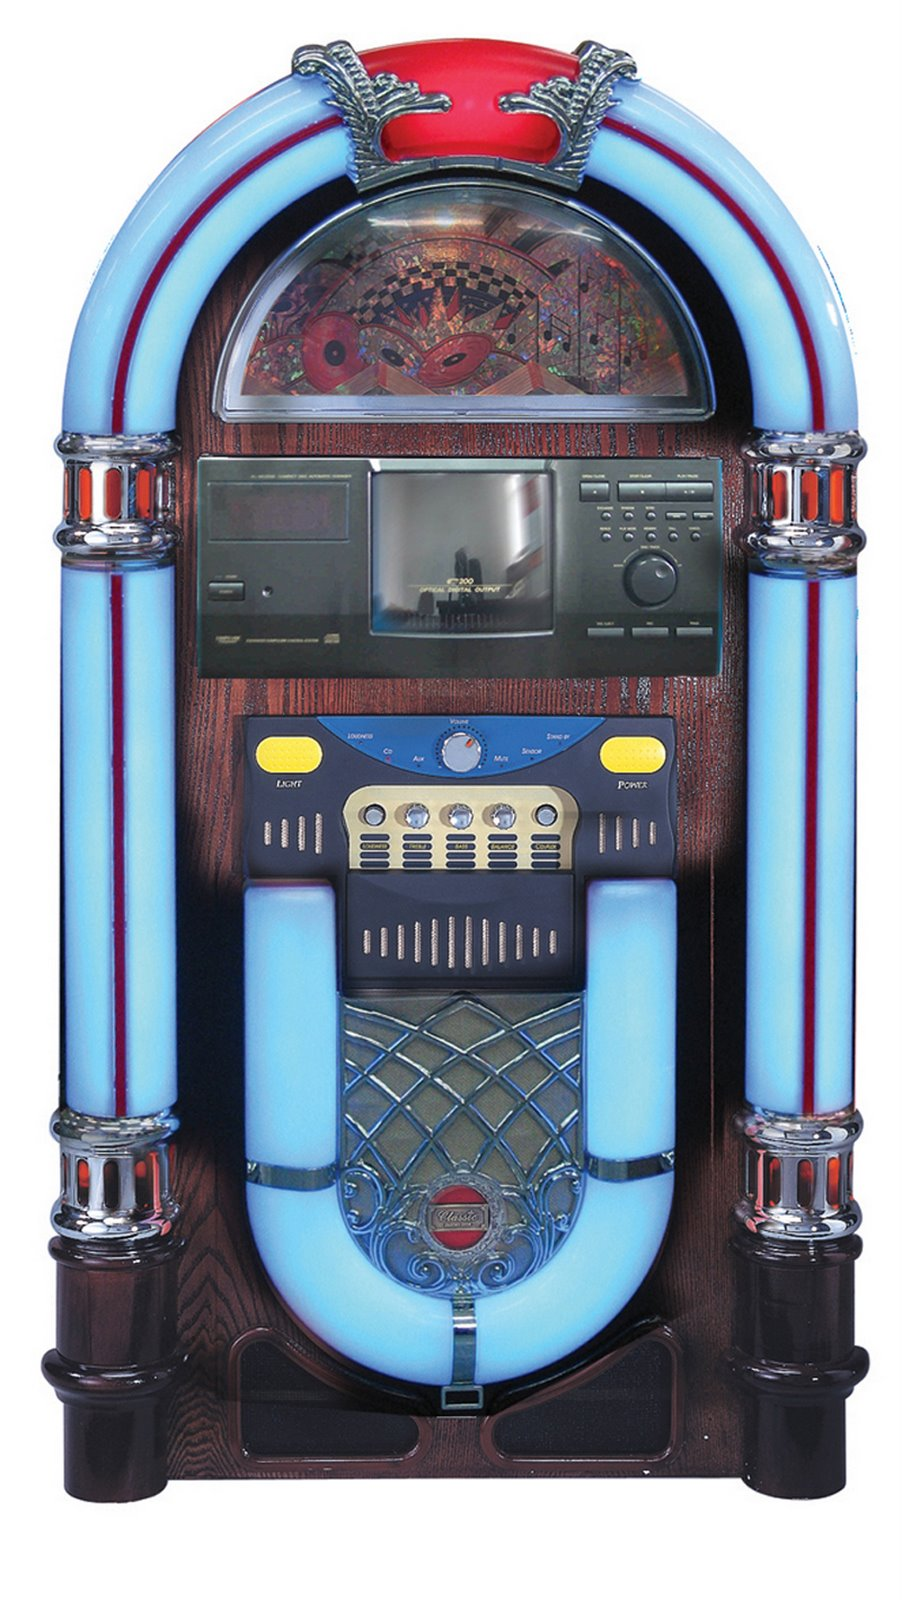 [jukebox.htm]